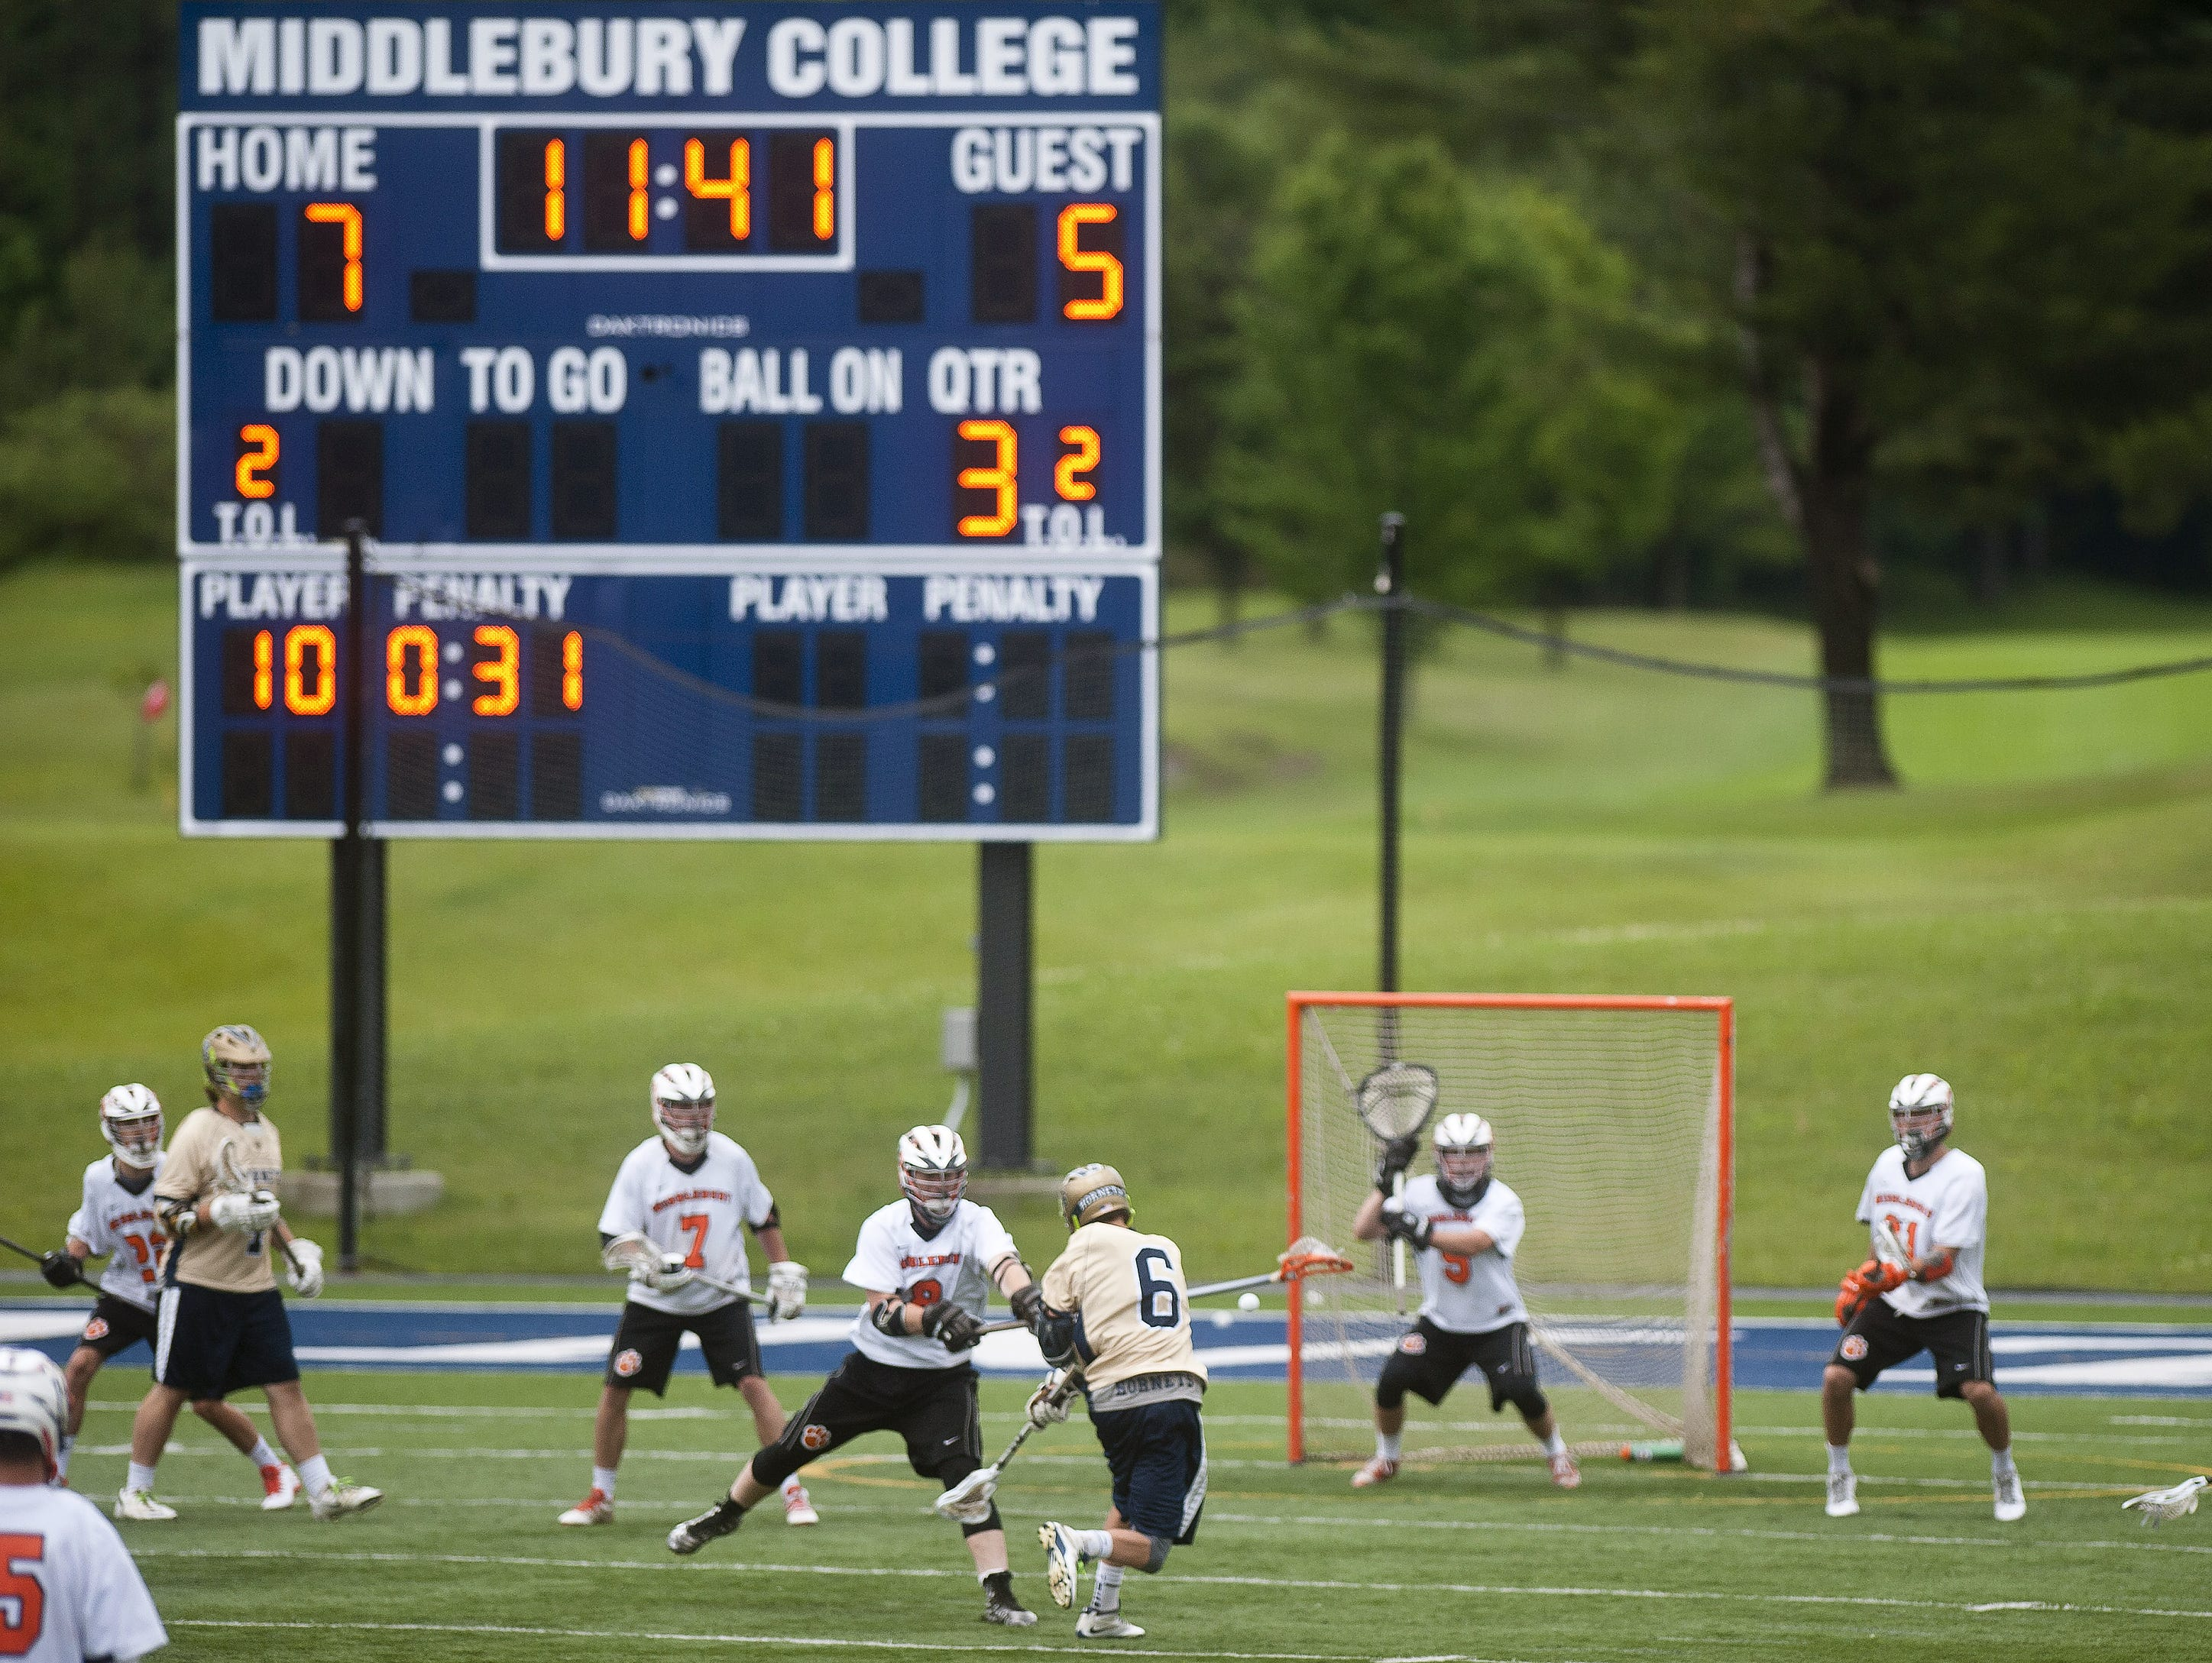 Essex's Joe Galati (6) fires a shot at Middlebury goalie Nathan Lalonde during the second half of Tuesday's Division I boys lacrosse semifinal at Middlebury College.